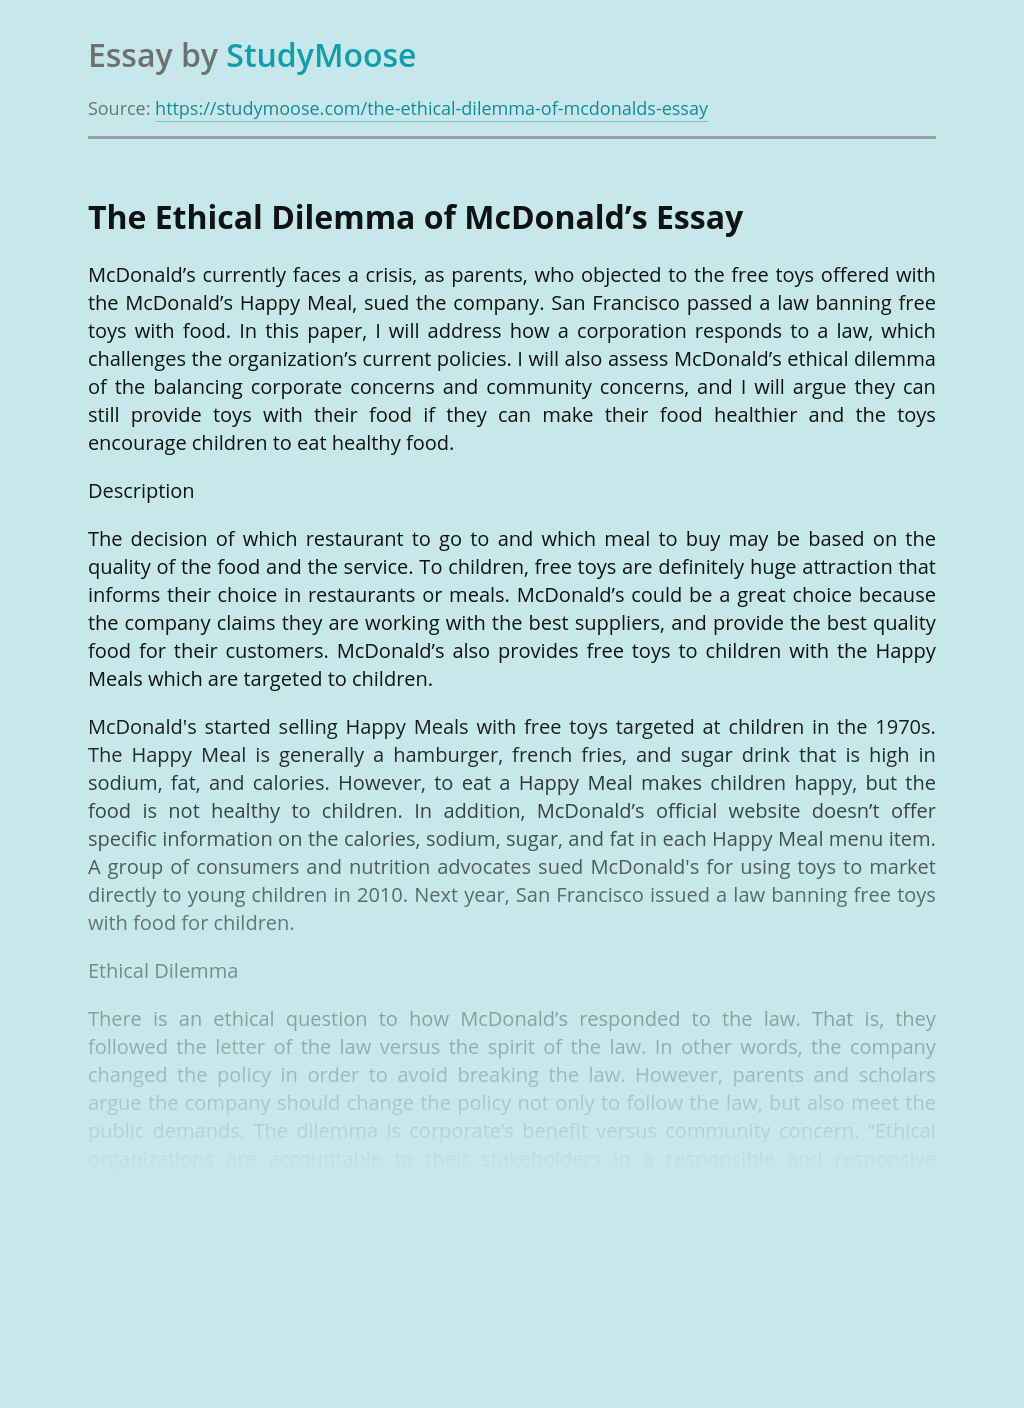 The Ethical Dilemma of McDonald's Company